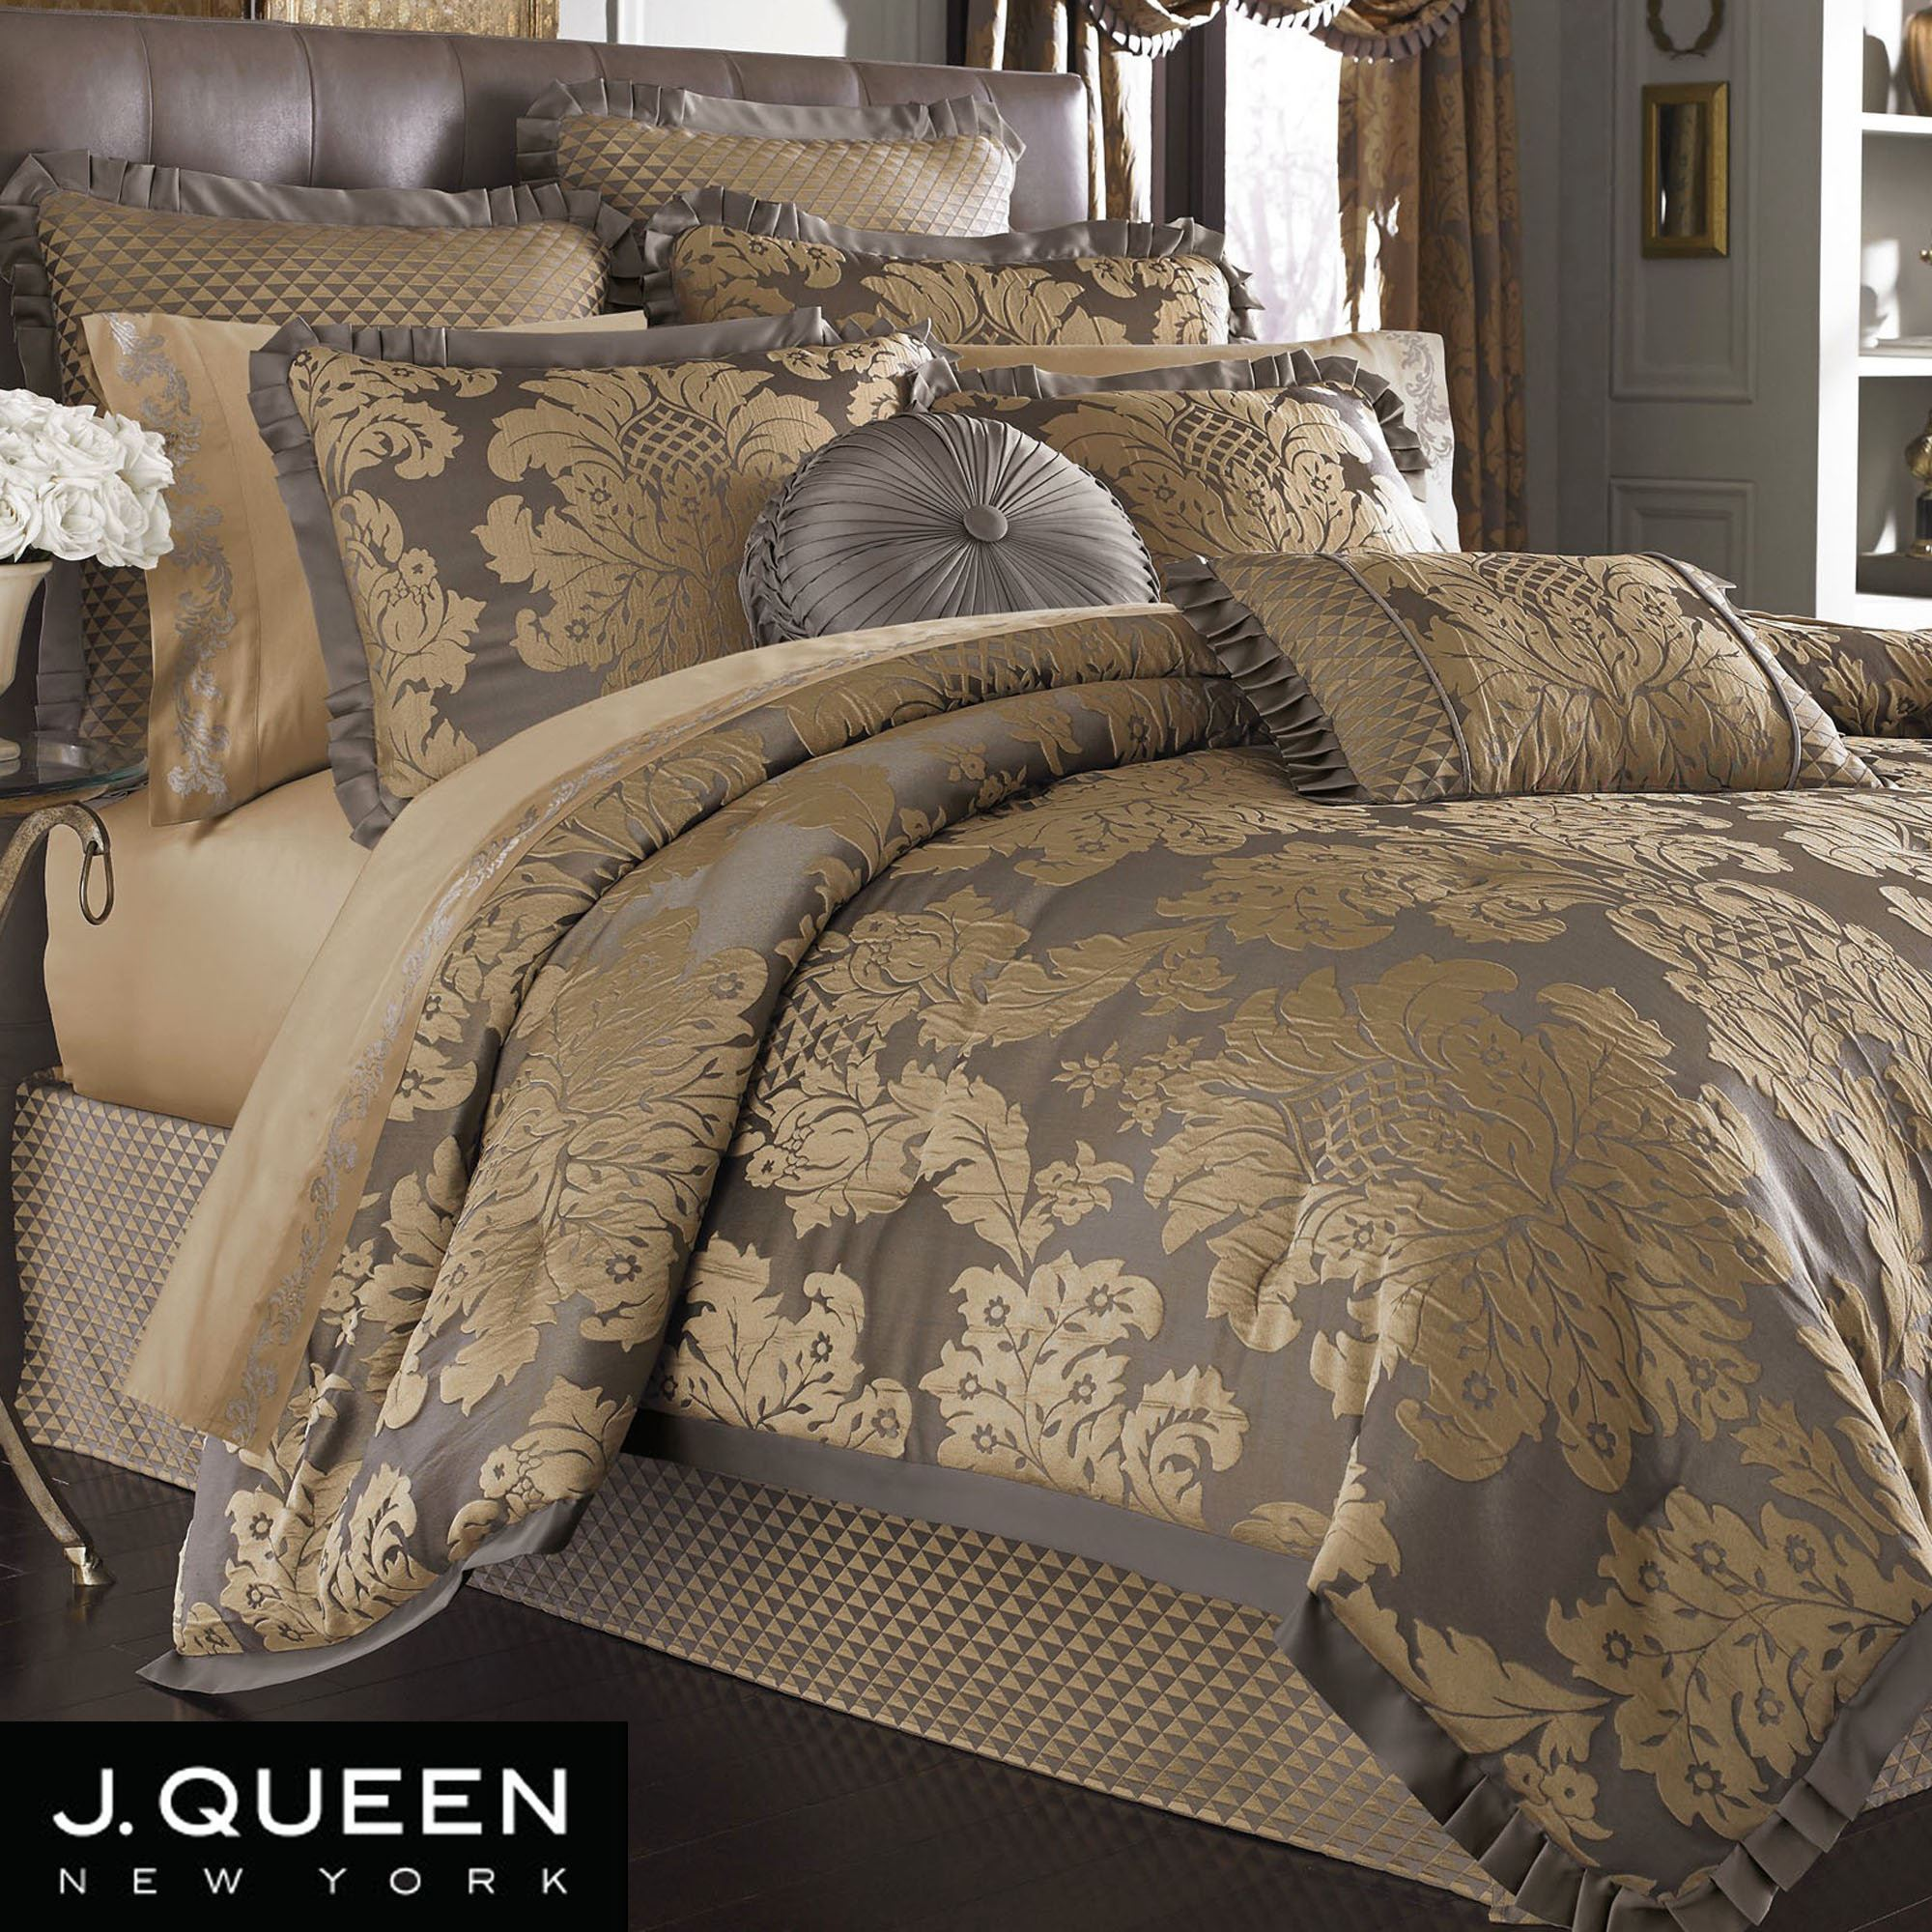 Awesome damask bedding for bed decorating ideas with damask bedding set and damask crib bedding